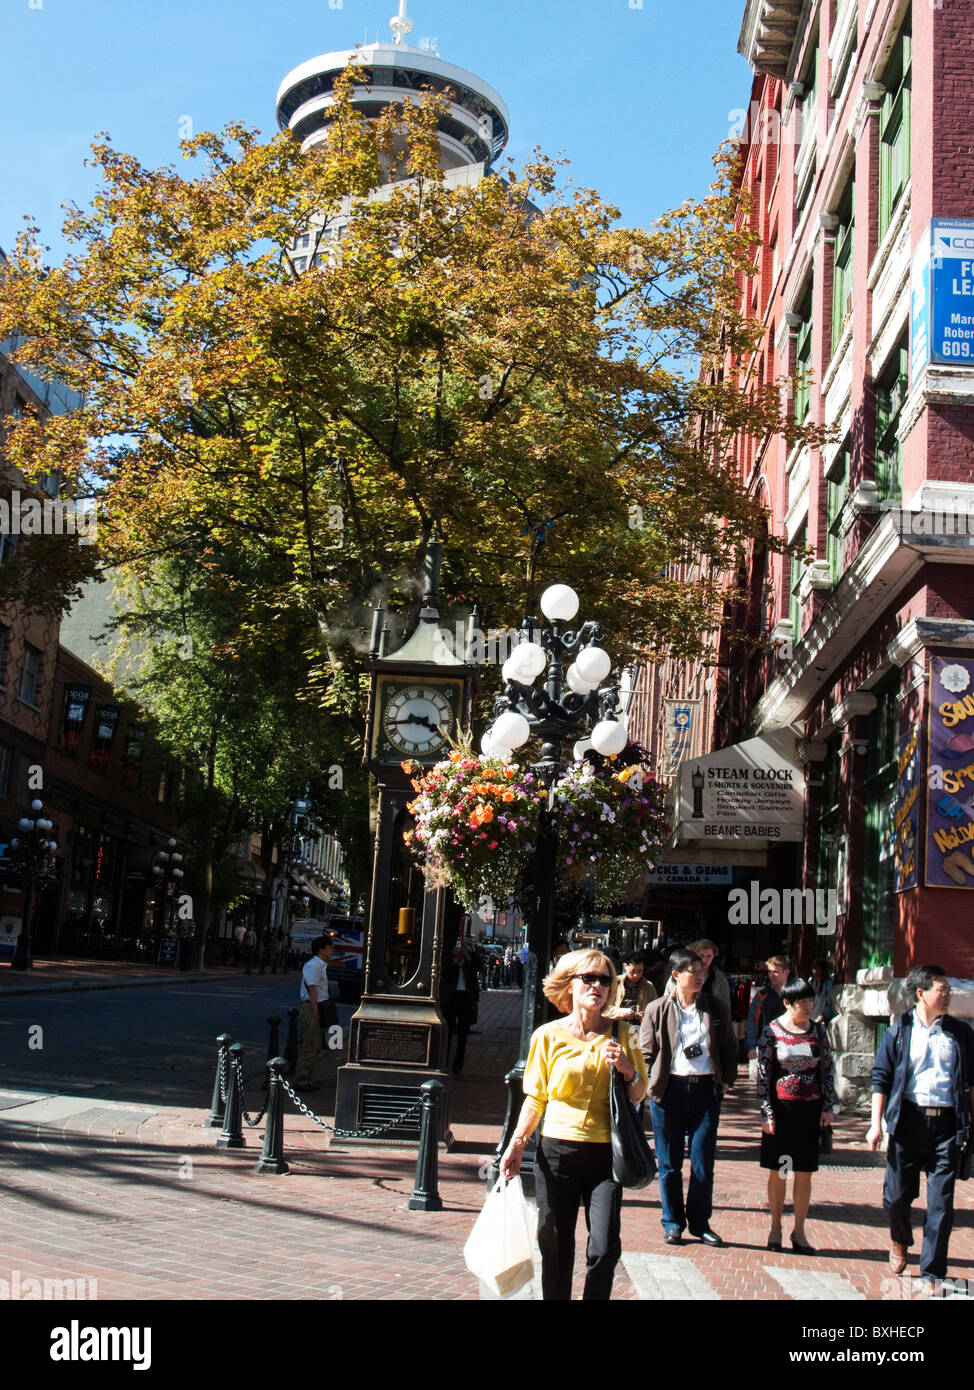 Water Street, Gastown, Vancouver, British Columbia, Canada, North America - Stock Image